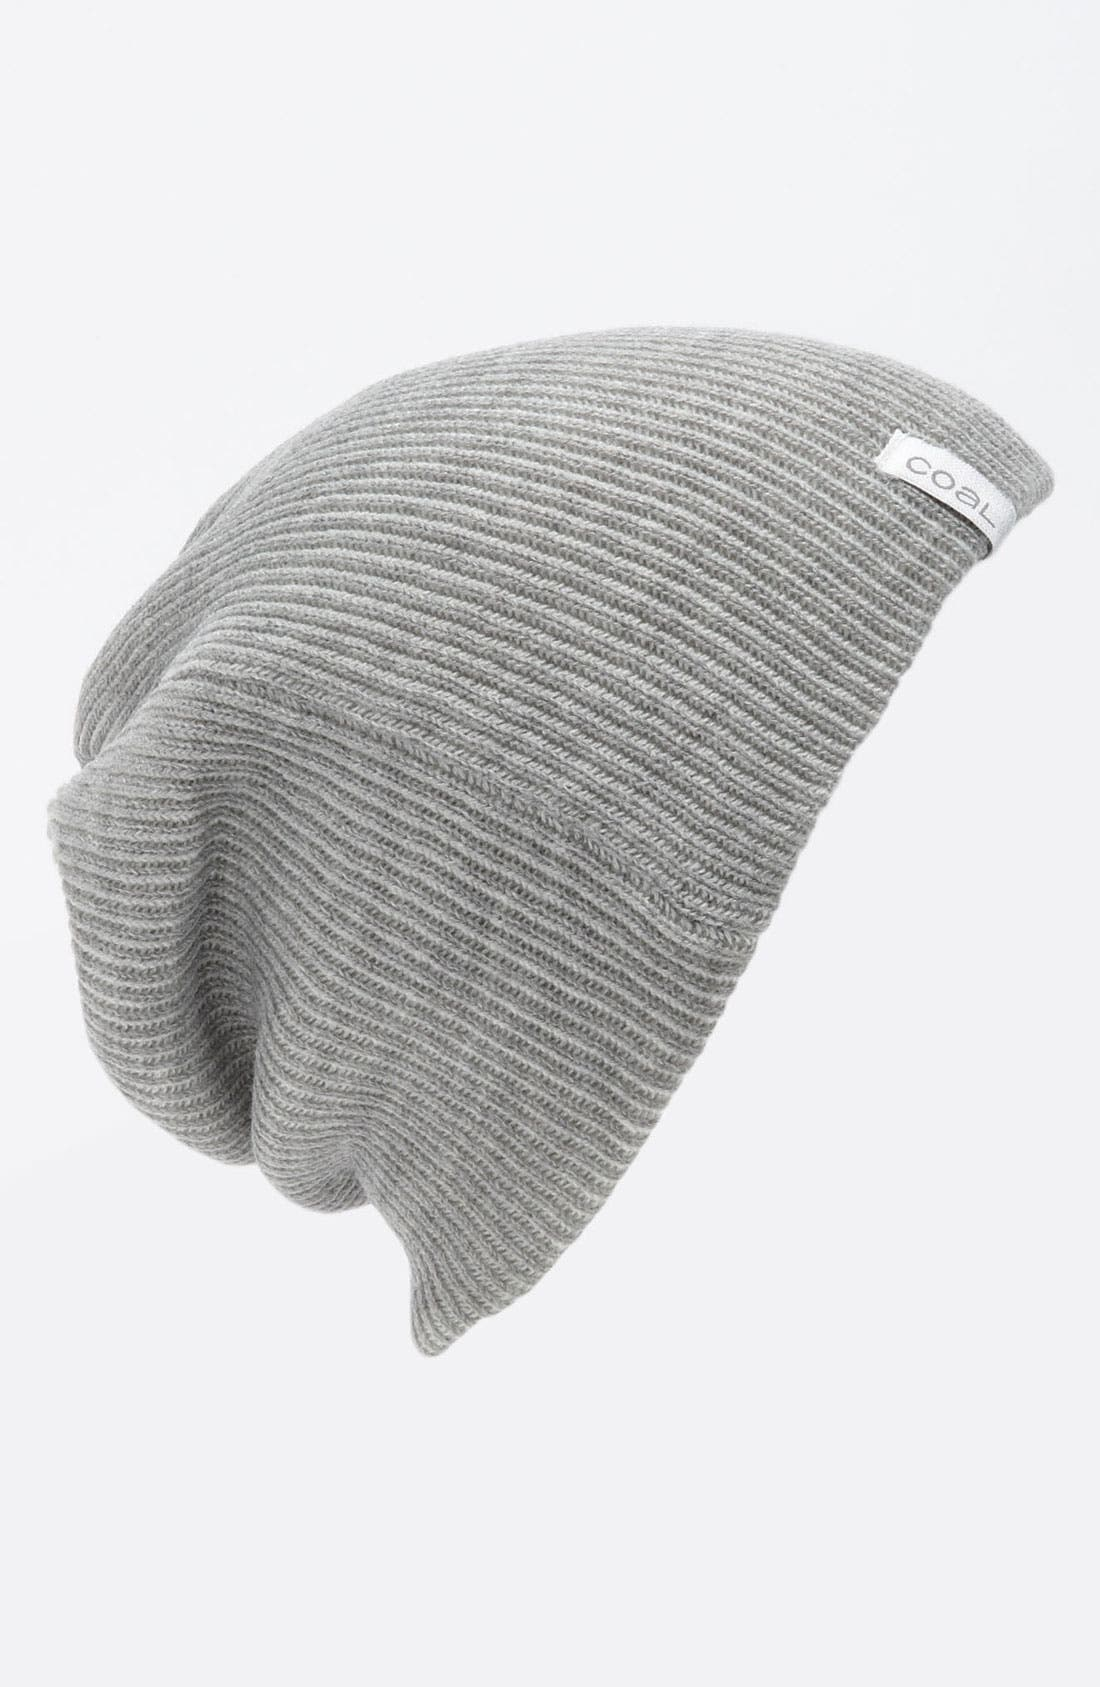 Alternate Image 1 Selected - Coal 'Binary' Knit Cap